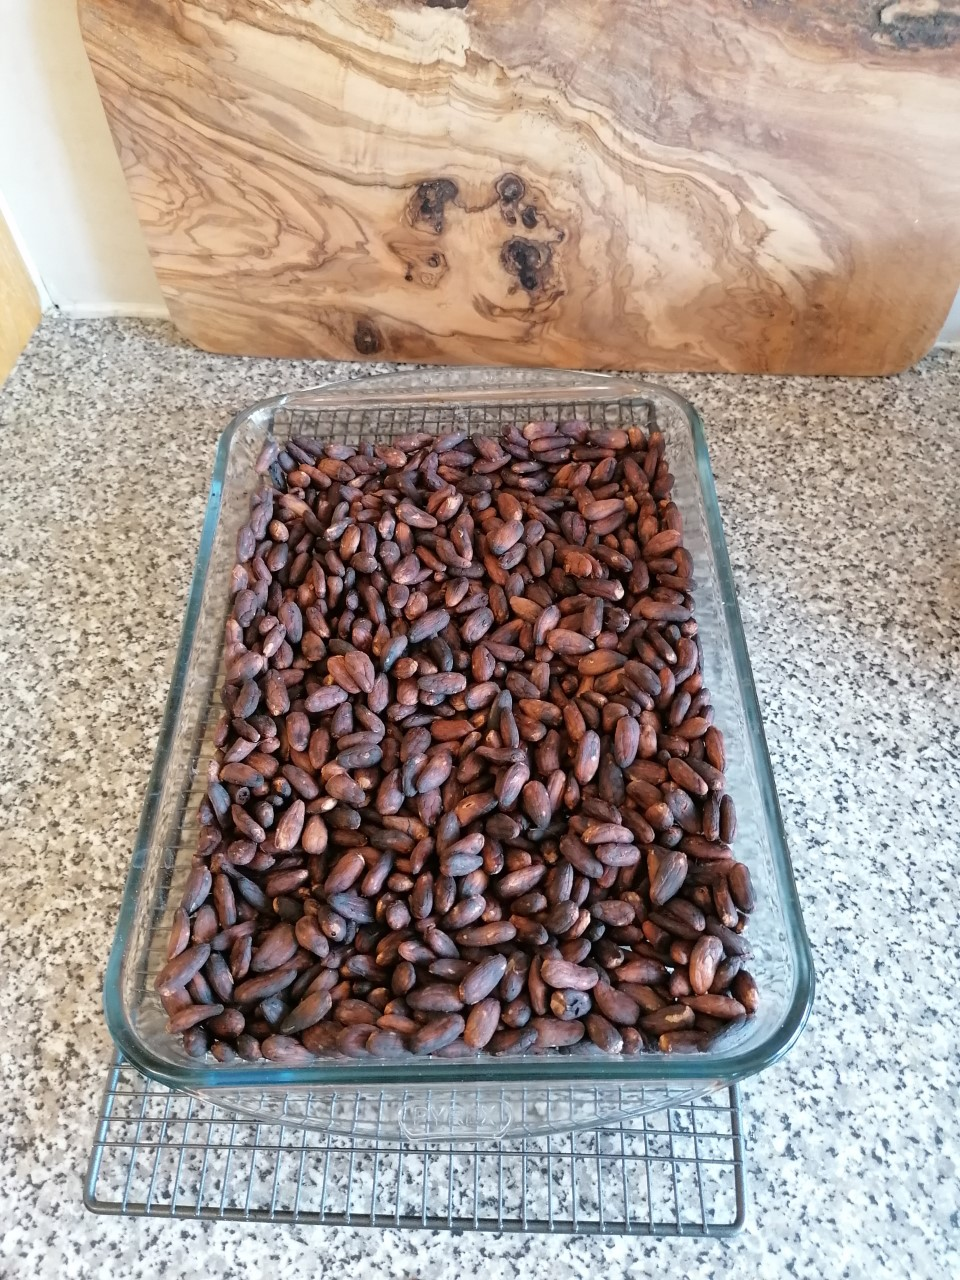 Winnowing cacao